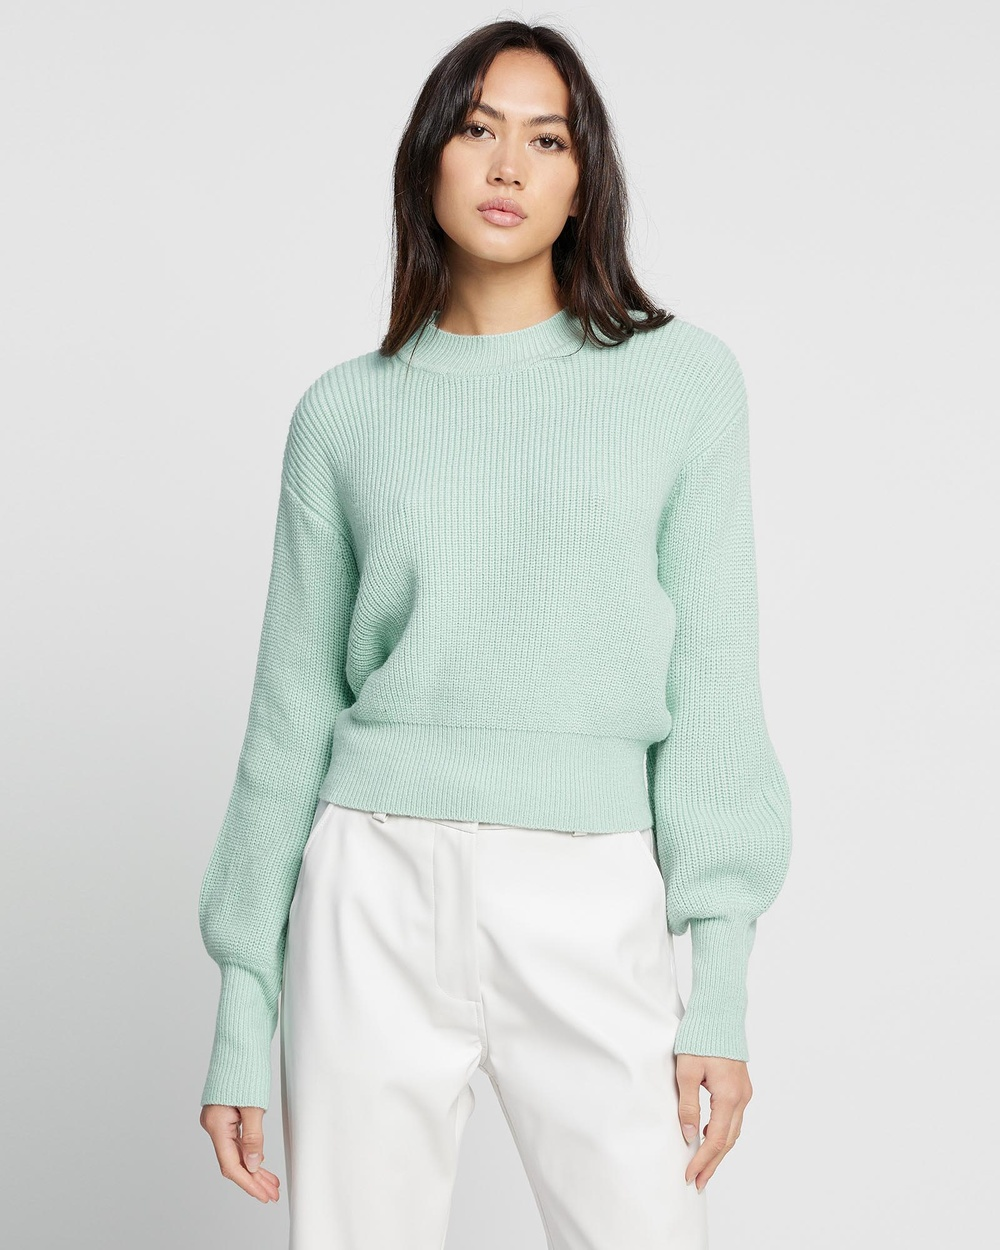 All About Eve Olivia Knit Sweater Jumpers & Cardigans Green